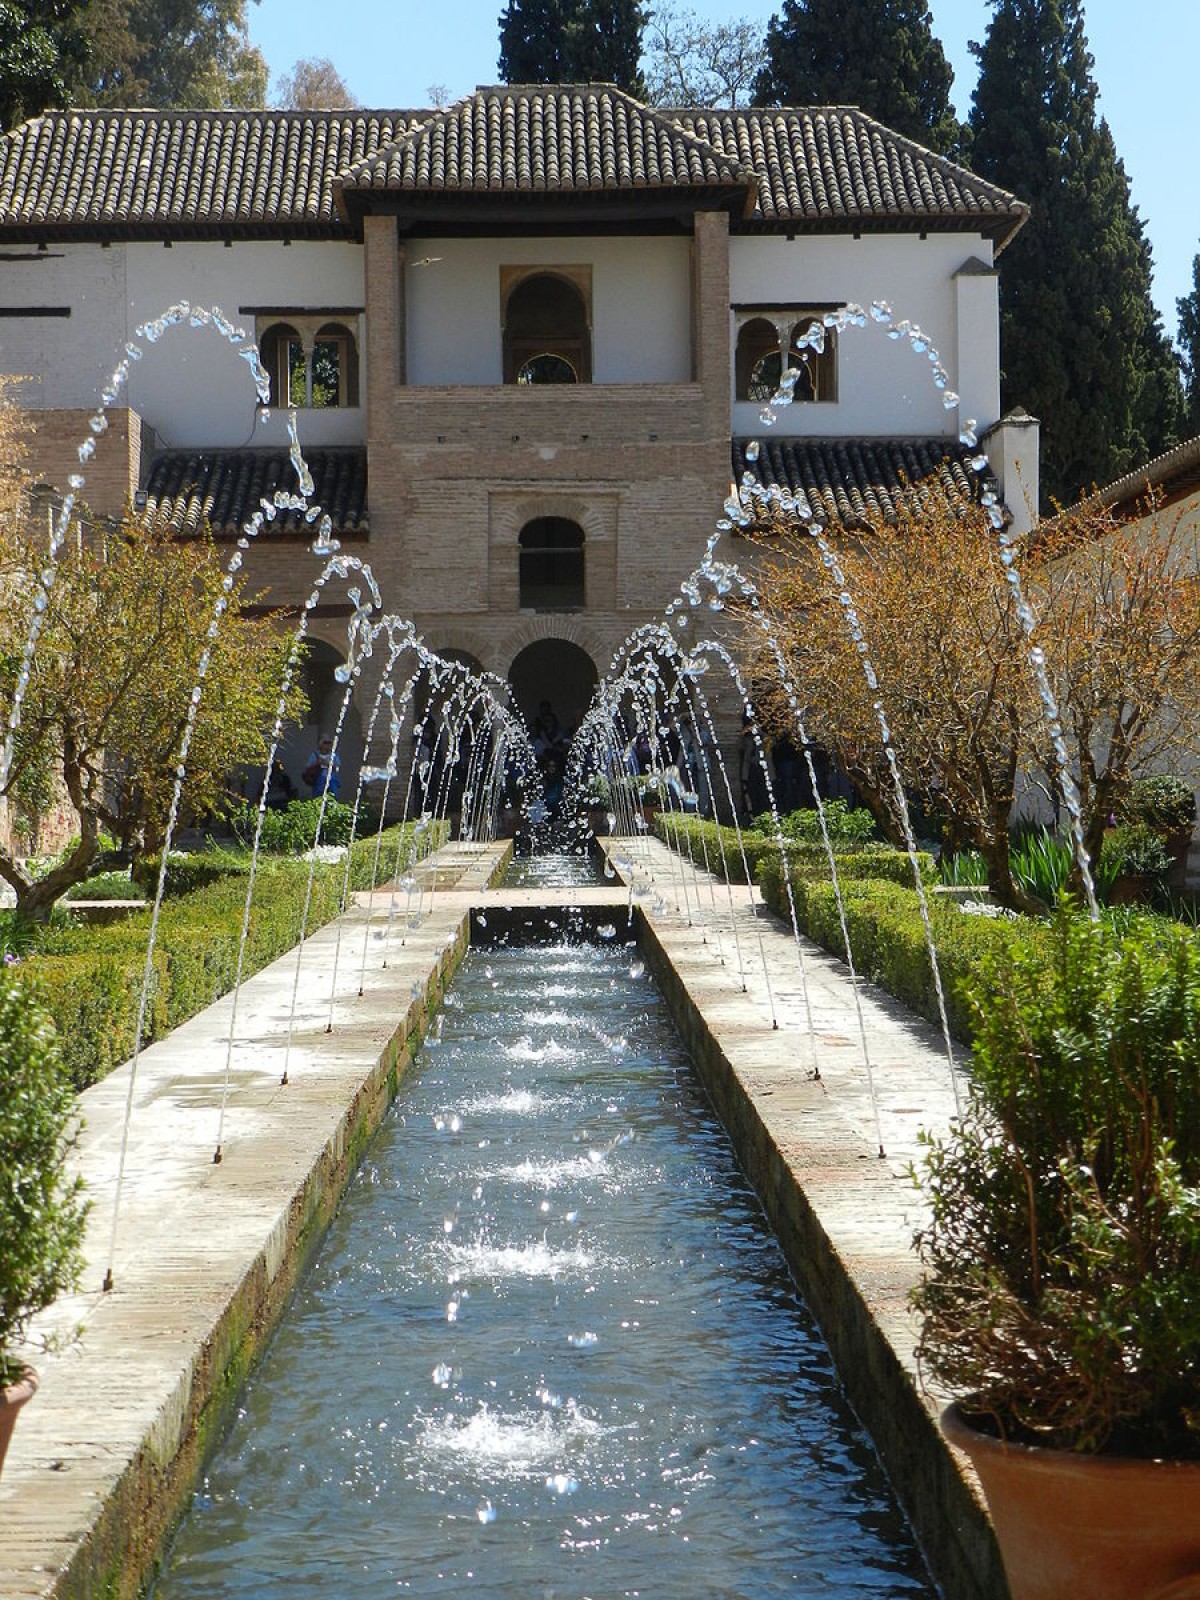 The Generalife gardens of Alhambra in Spain (creative commons)